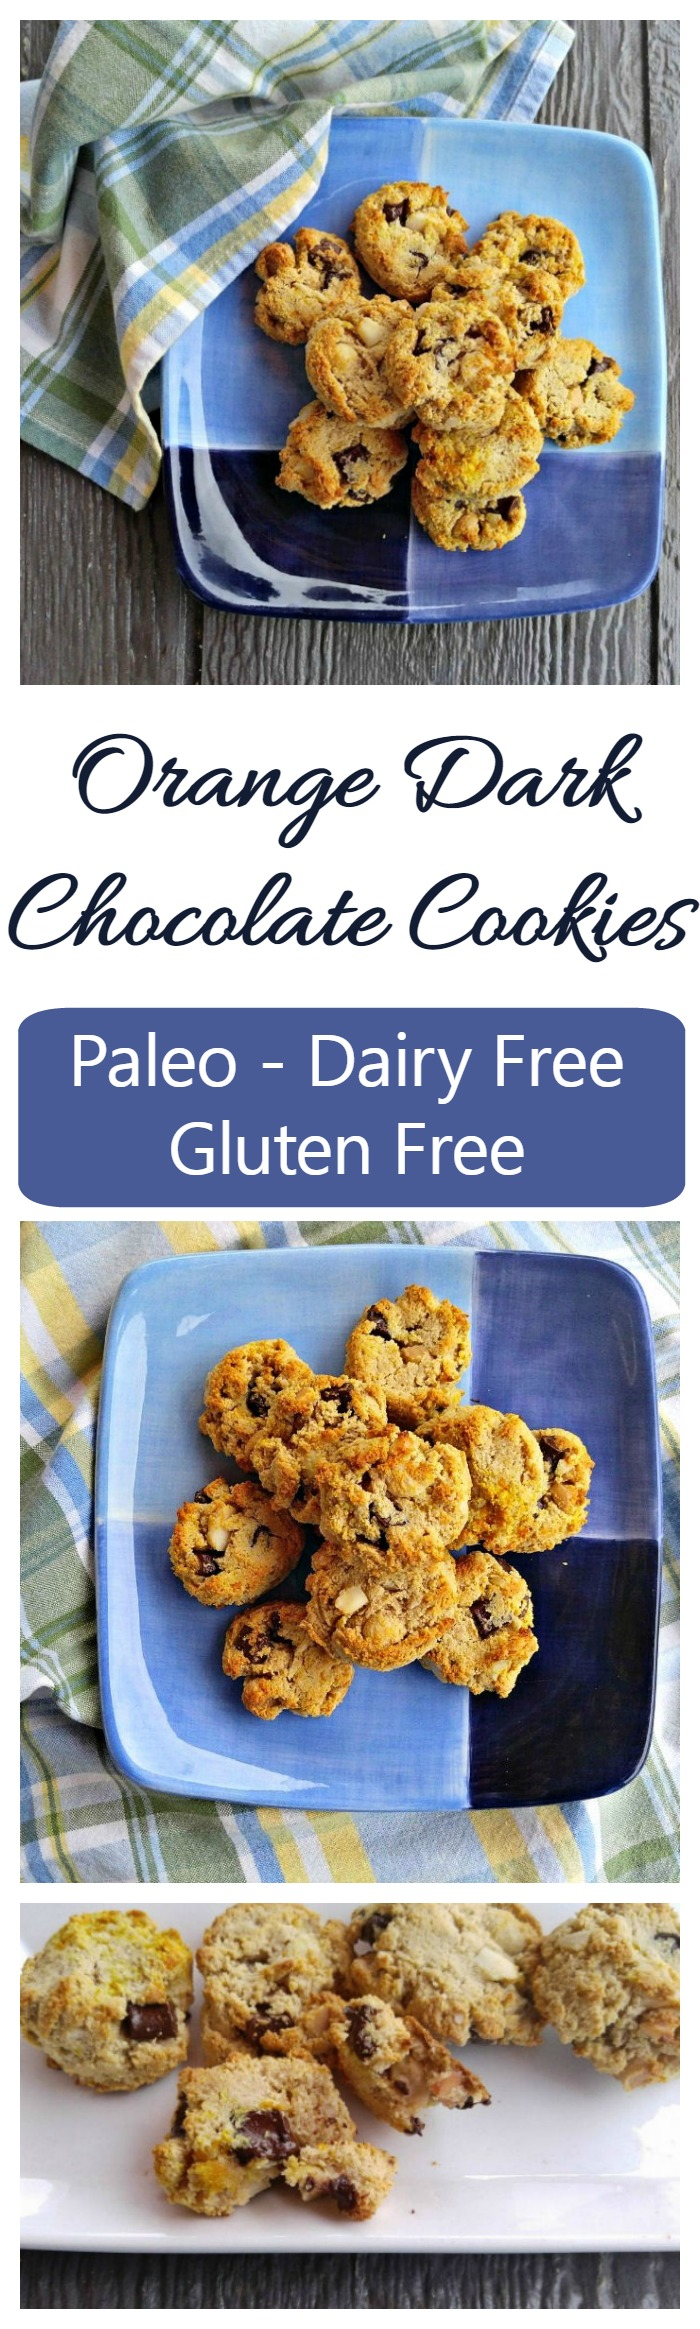 These Orange dark chocolate cookies are dairy free, gluten free and have no added refined sugar. They fit perfectly into a Paleo diet.